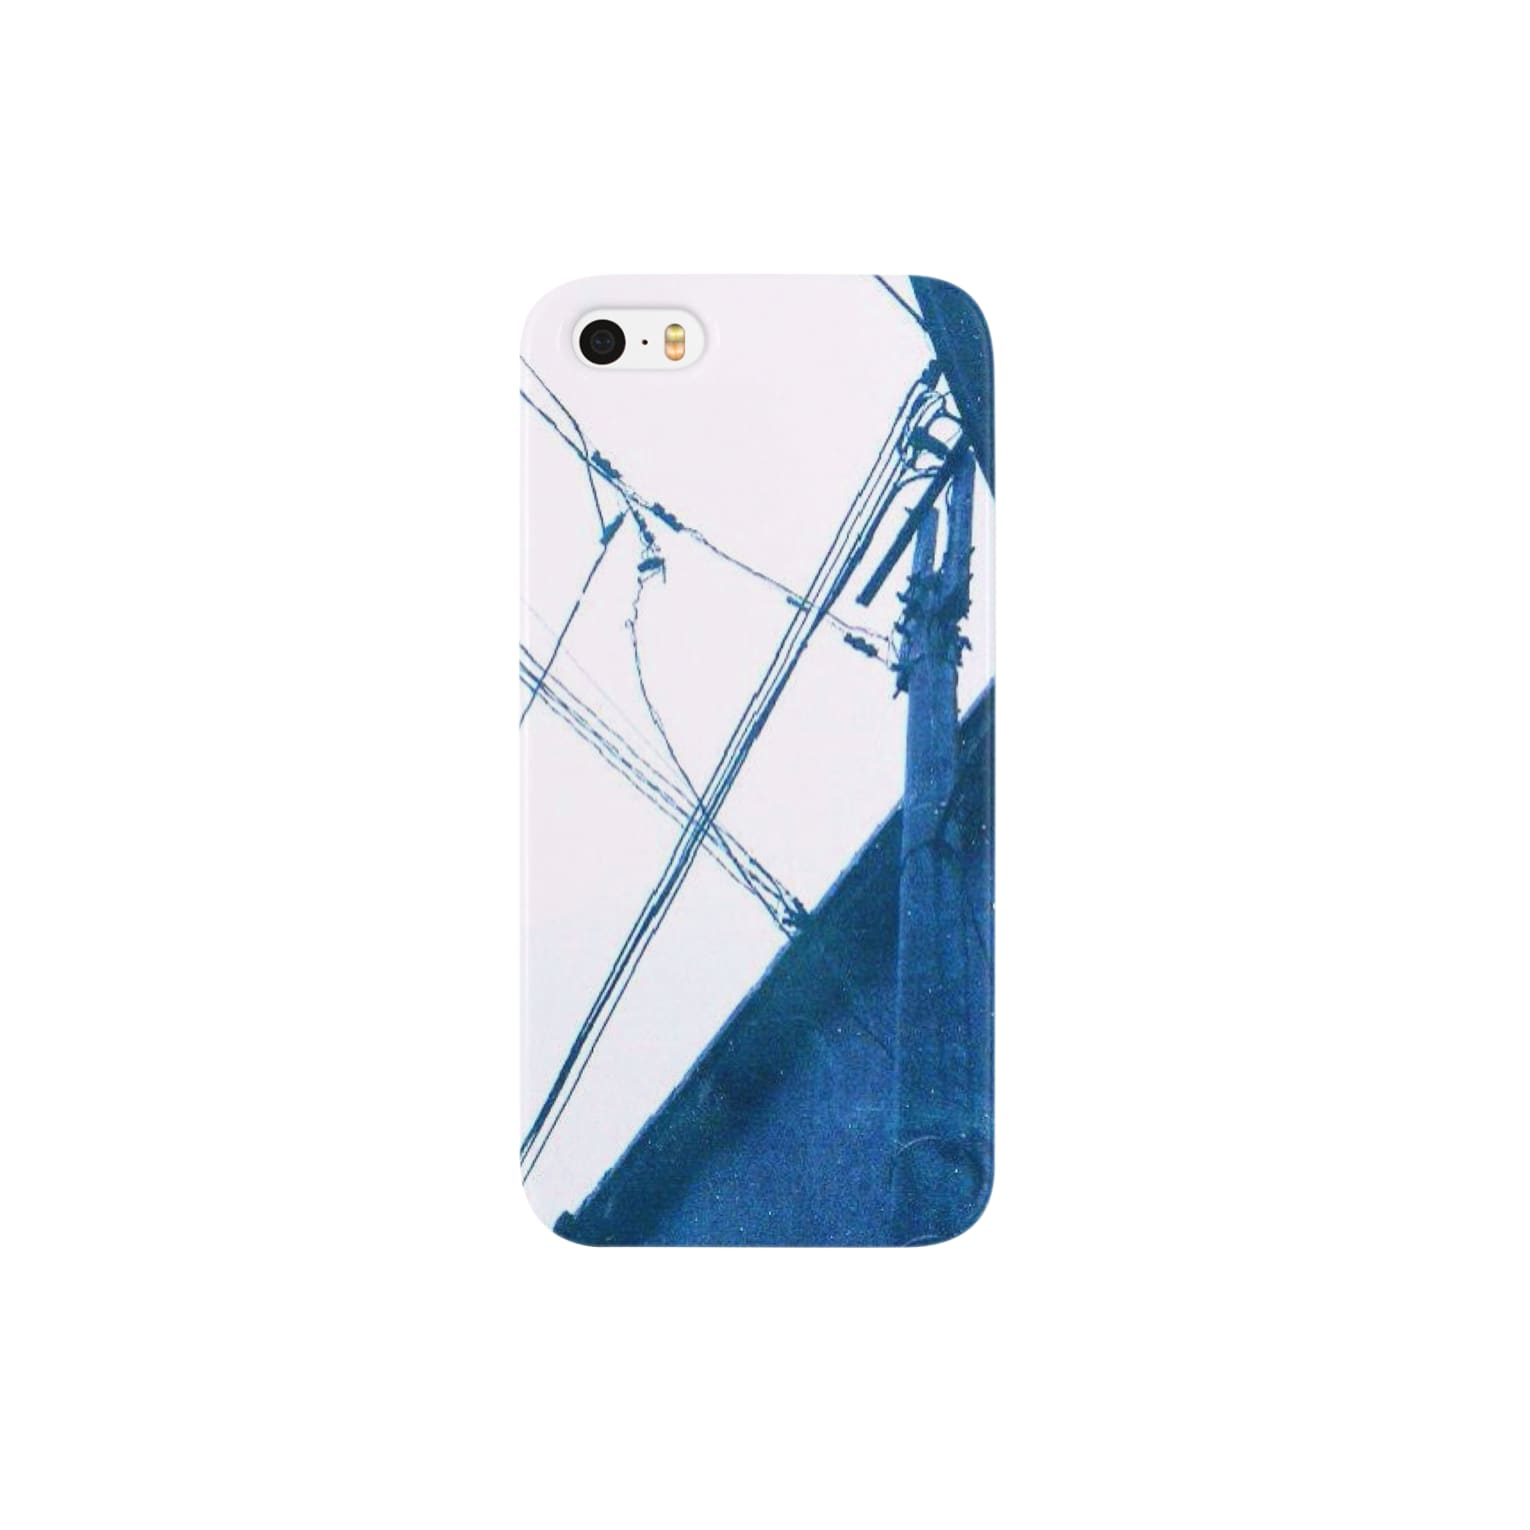 【Noir SHOP】のElectric wire* Smartphone cases